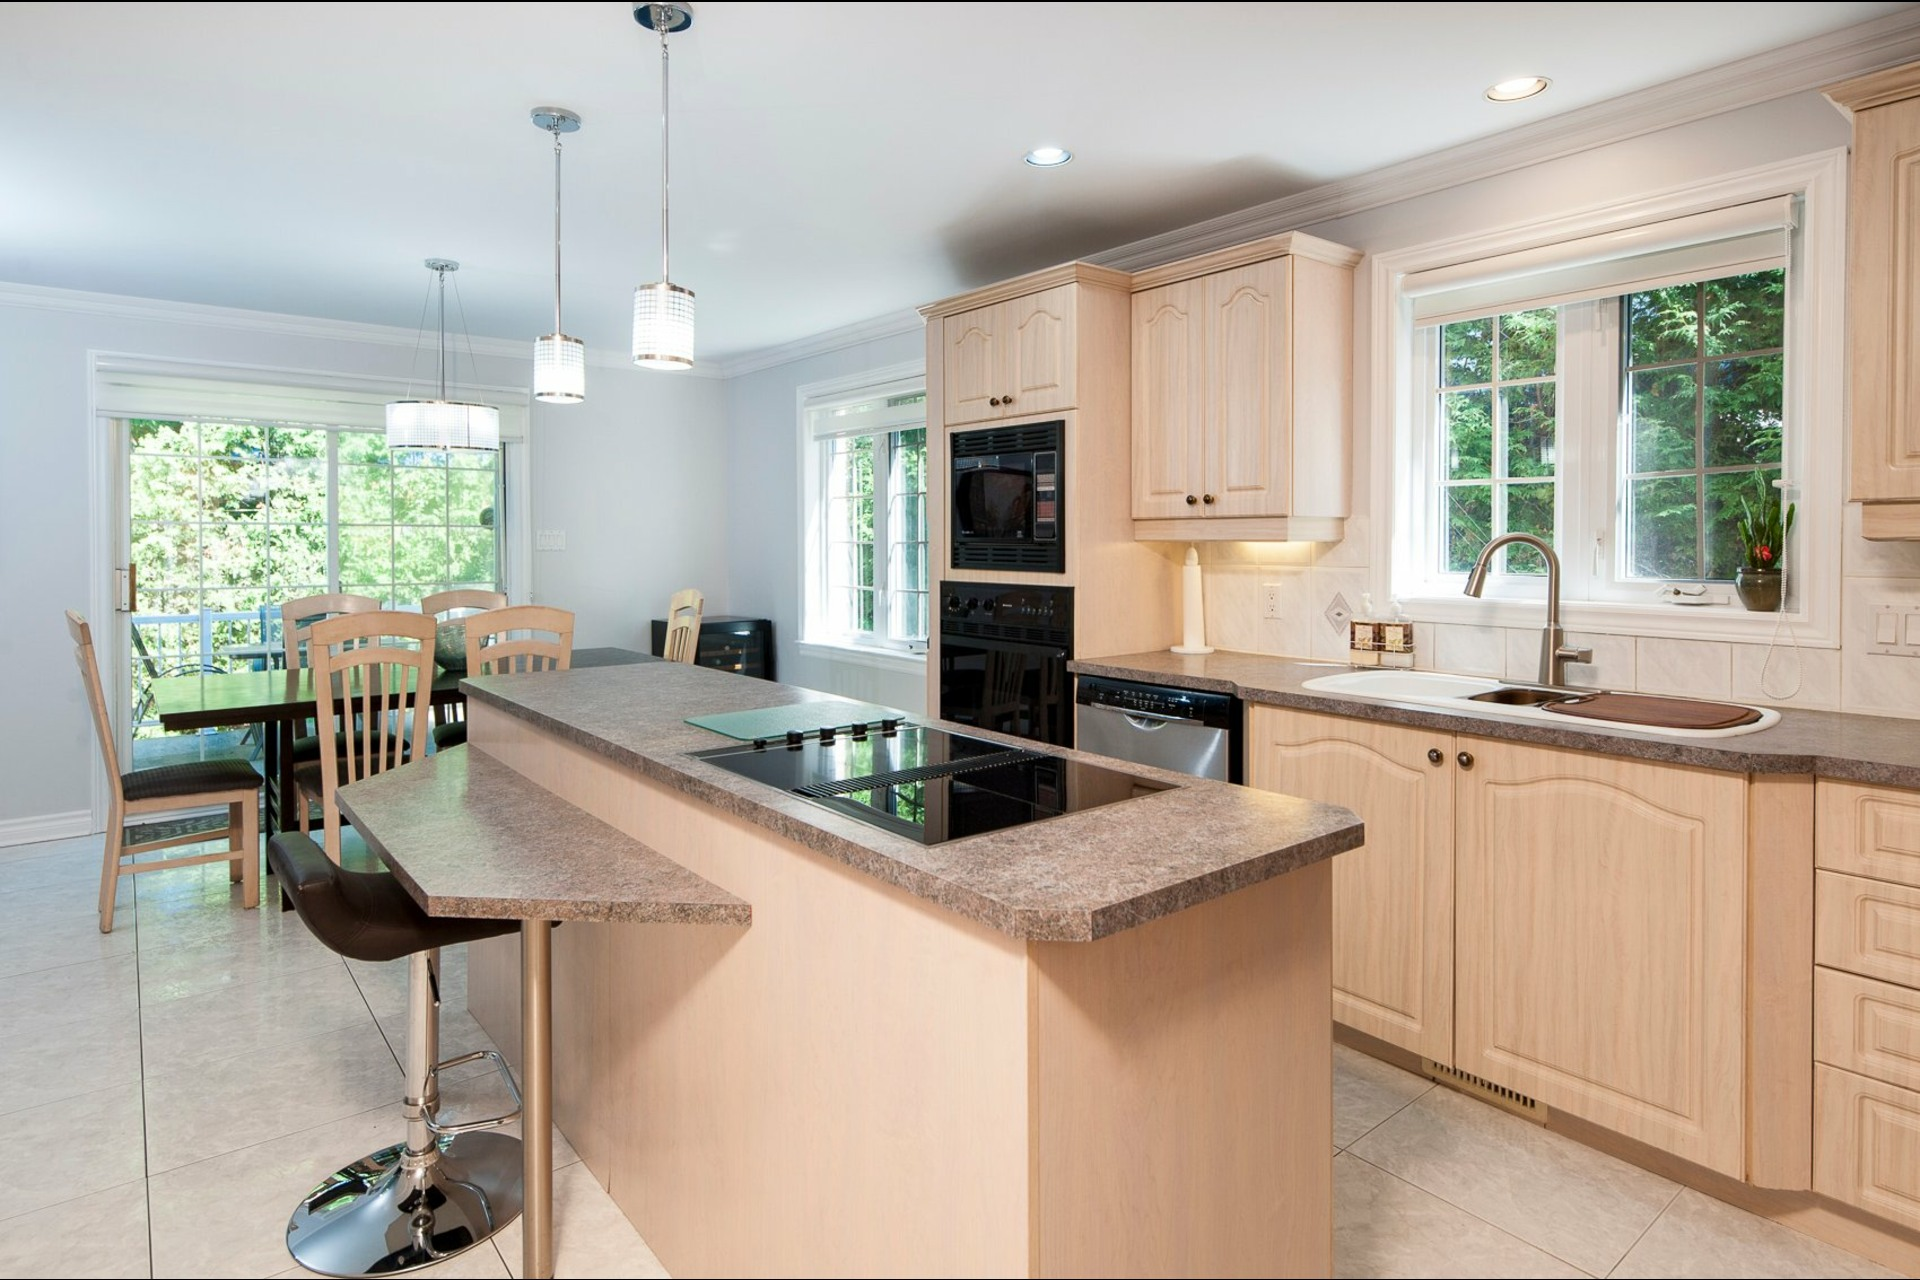 image 9 - House For sale Beaconsfield